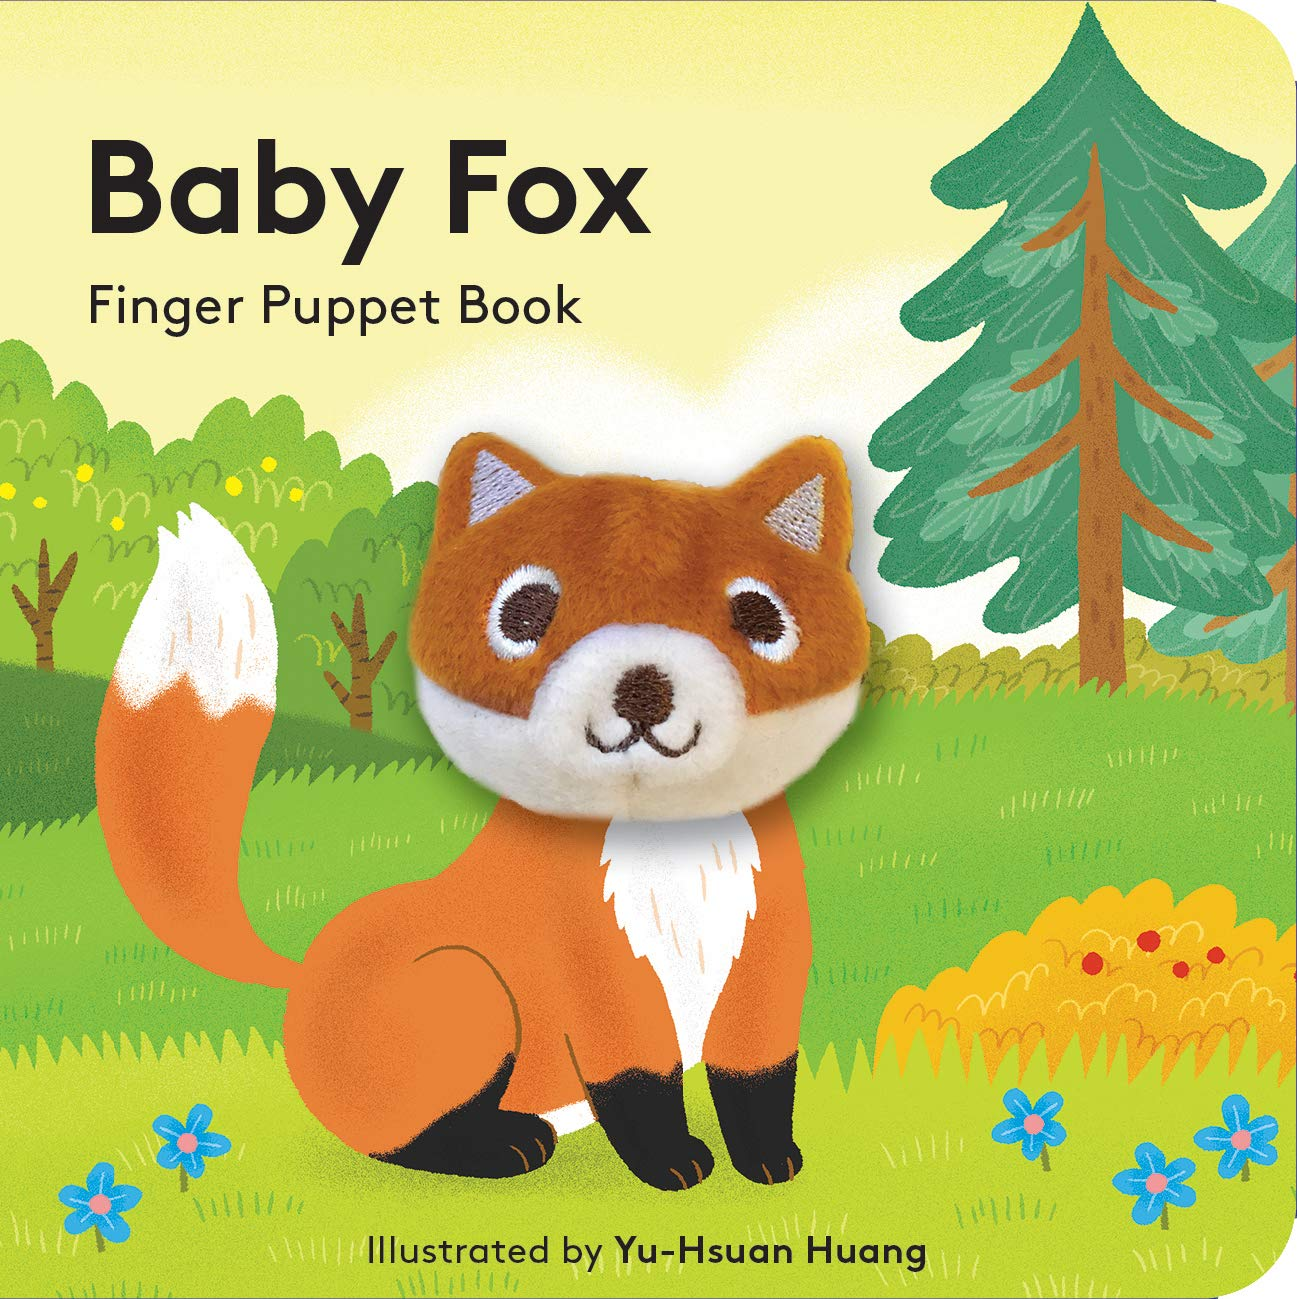 Baby Fox Finger Puppet Book